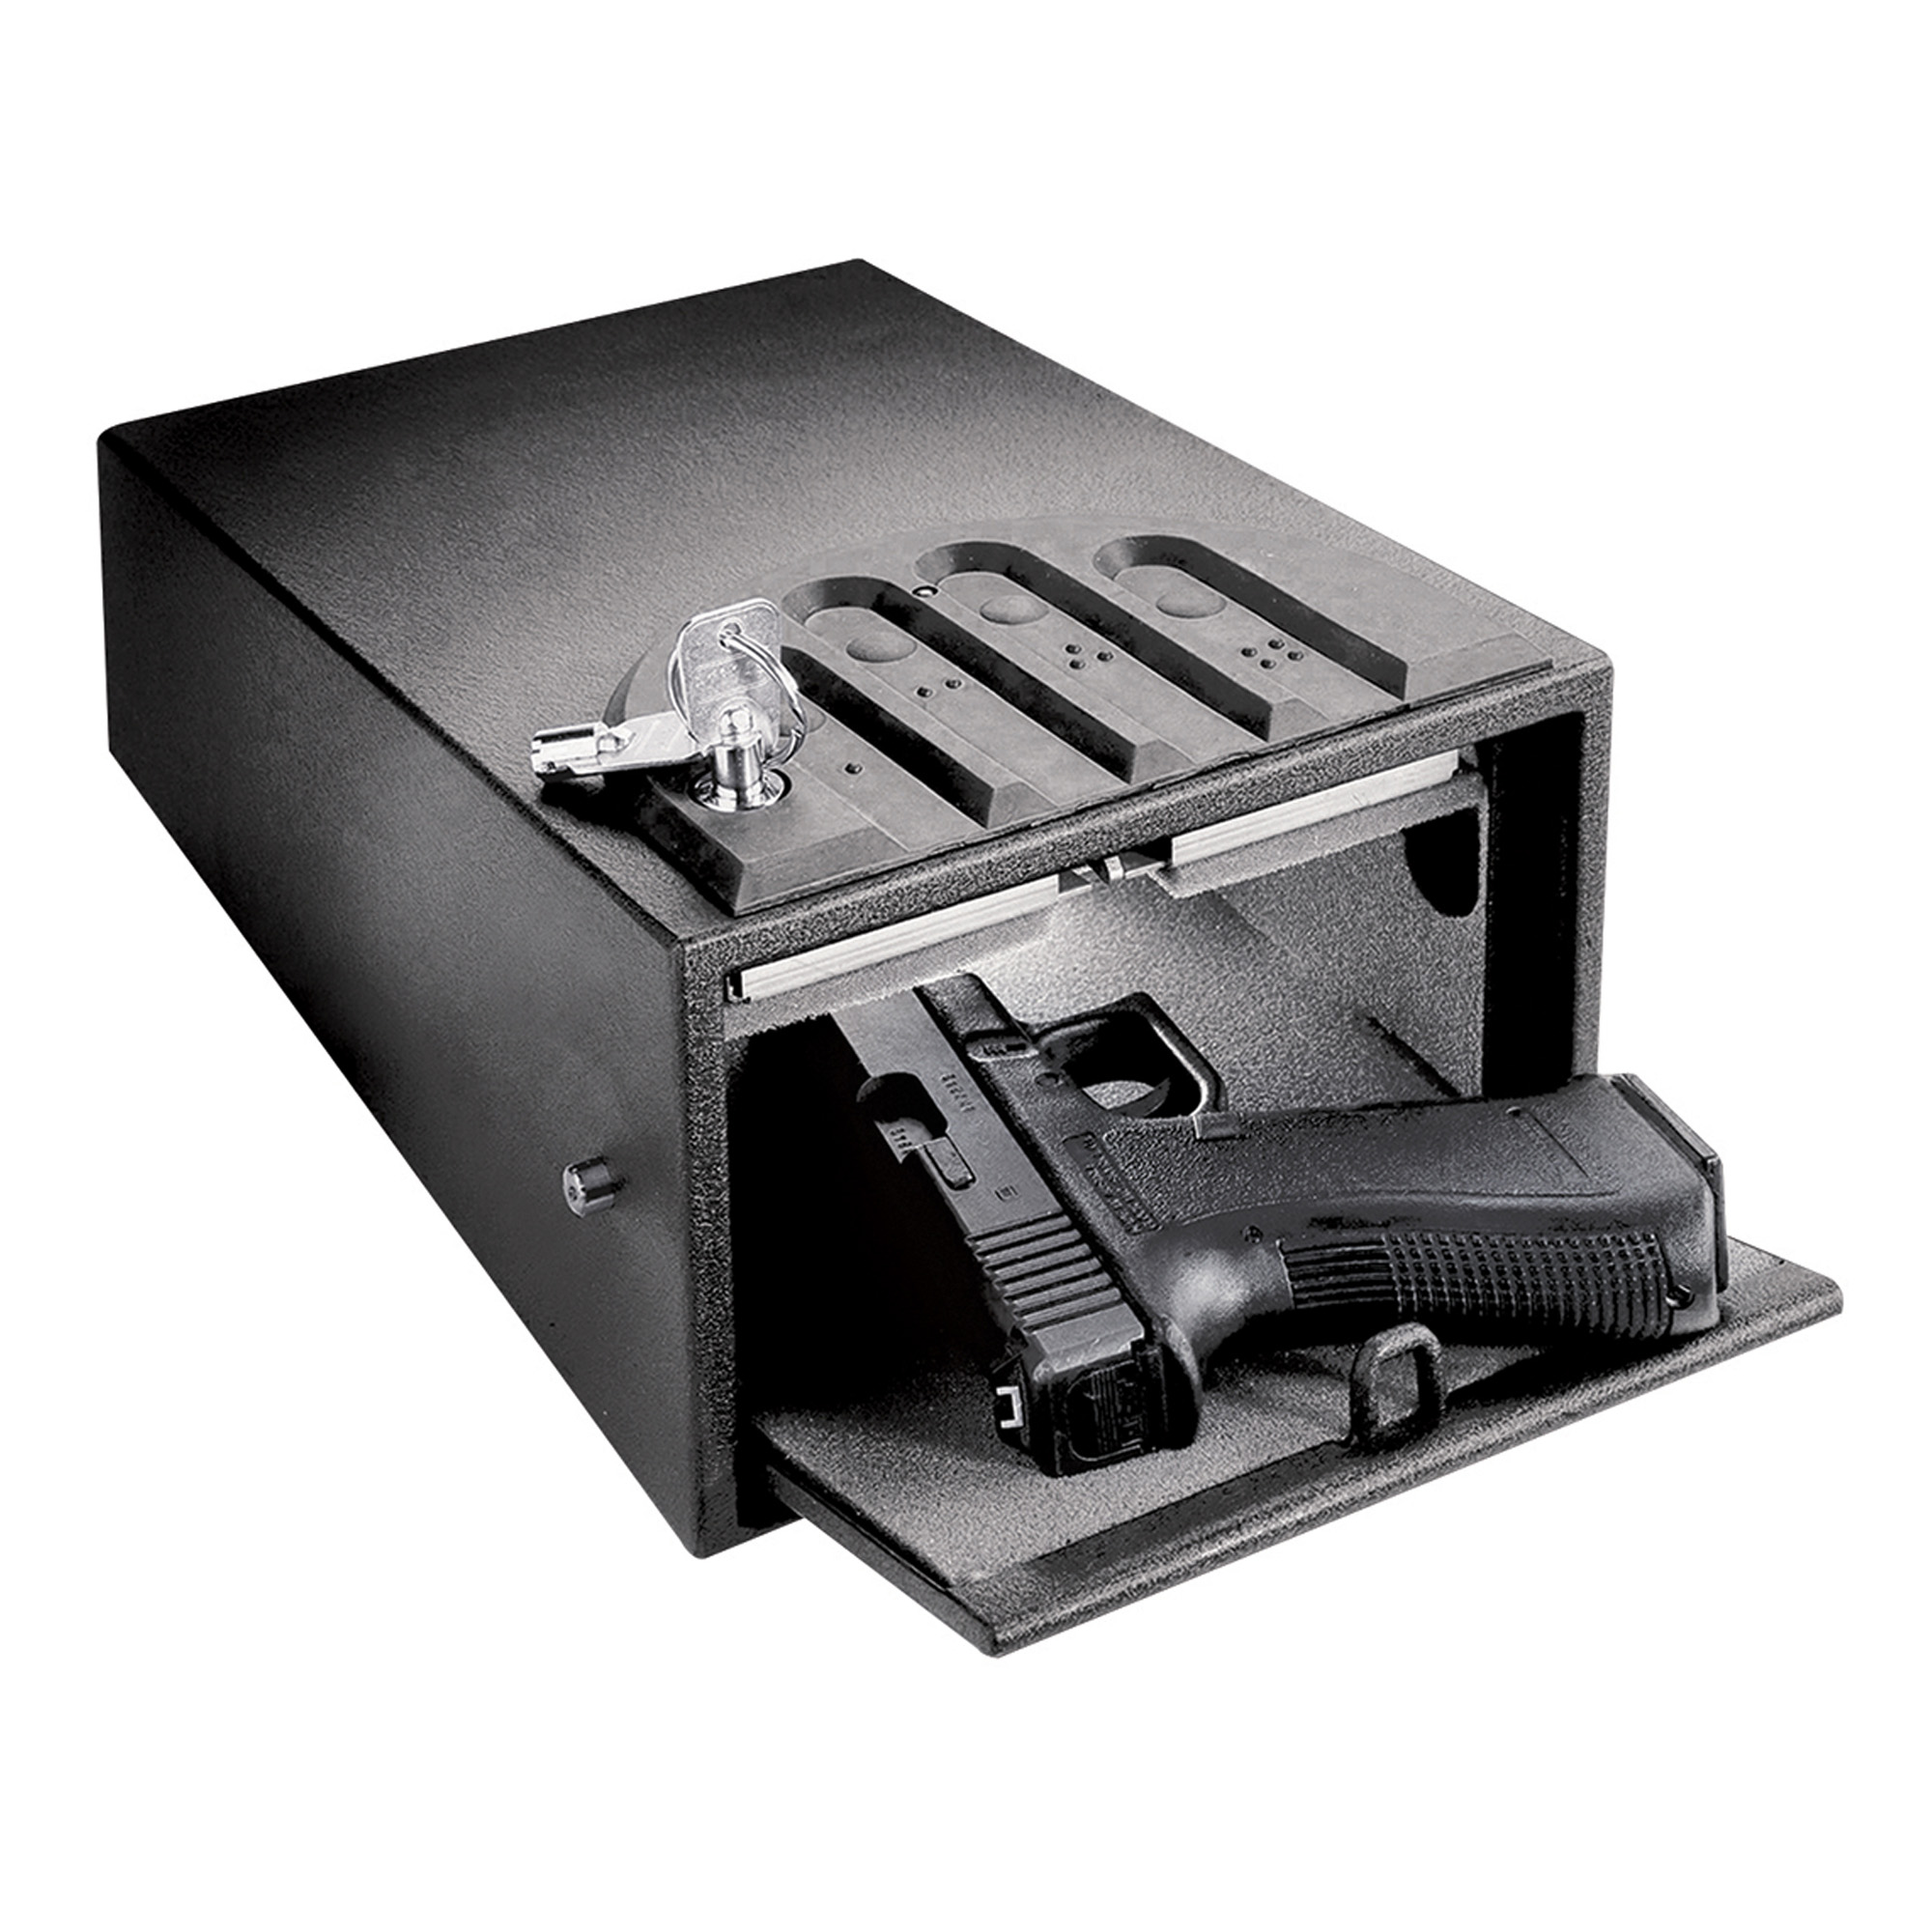 "The GunVault team works day in and day out to provide you with the best possible secure firearm storage solutions. Whether you are looking for a quick access safe to provide protection against burglars or a secure storage device to keep your handguns out of the reach of children"" GunVault has products with the features you want and the strength you need."